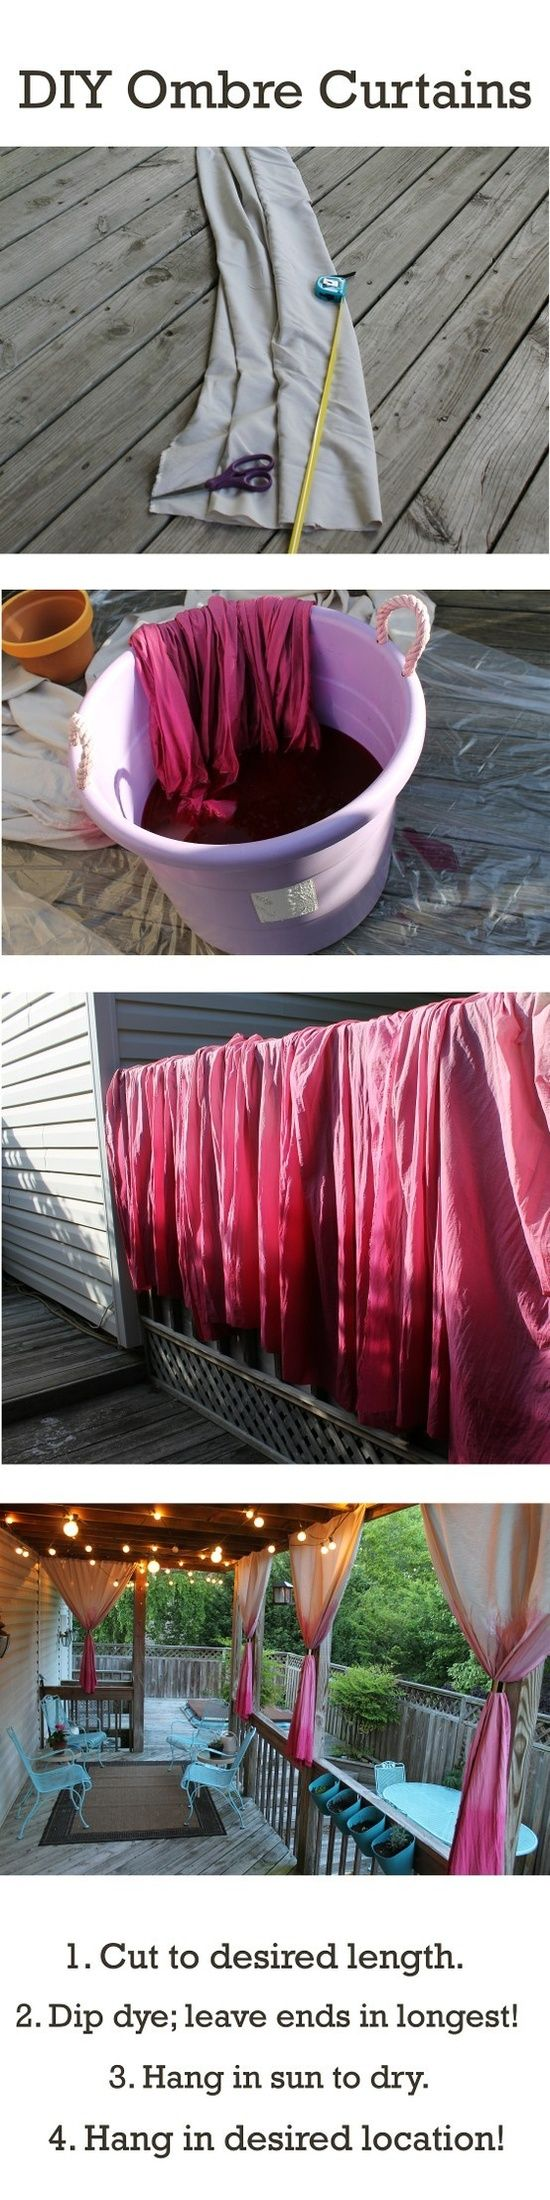 best projects ideas u neat tips images on pinterest craft